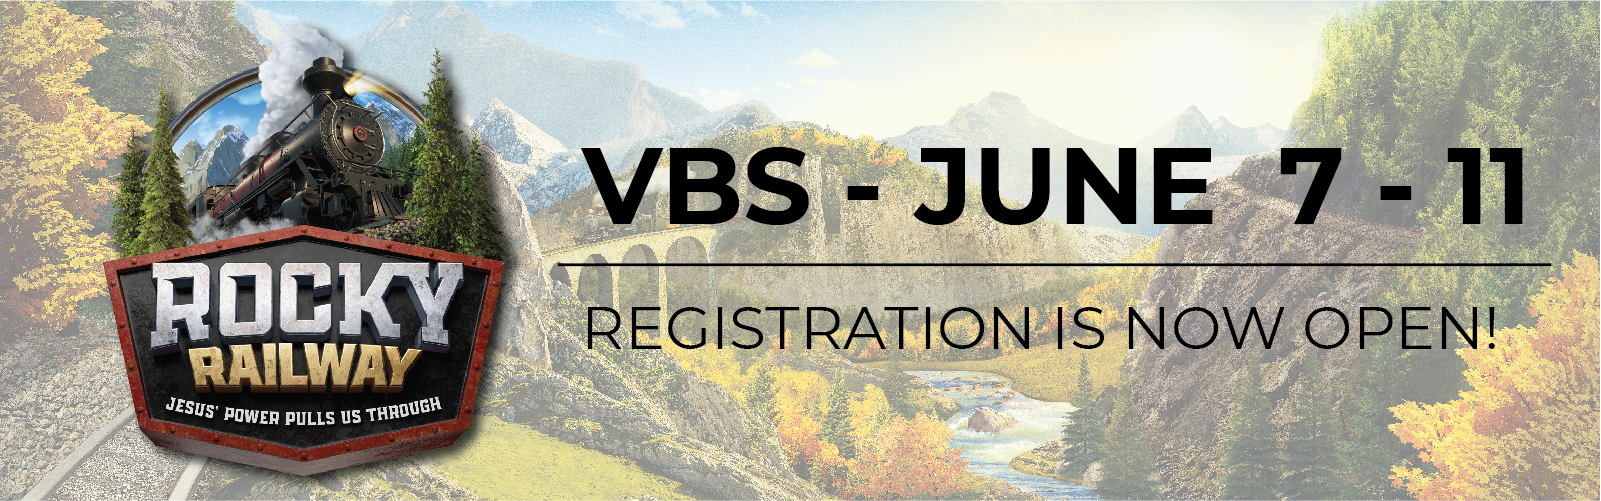 VBS_webpage_banner-01